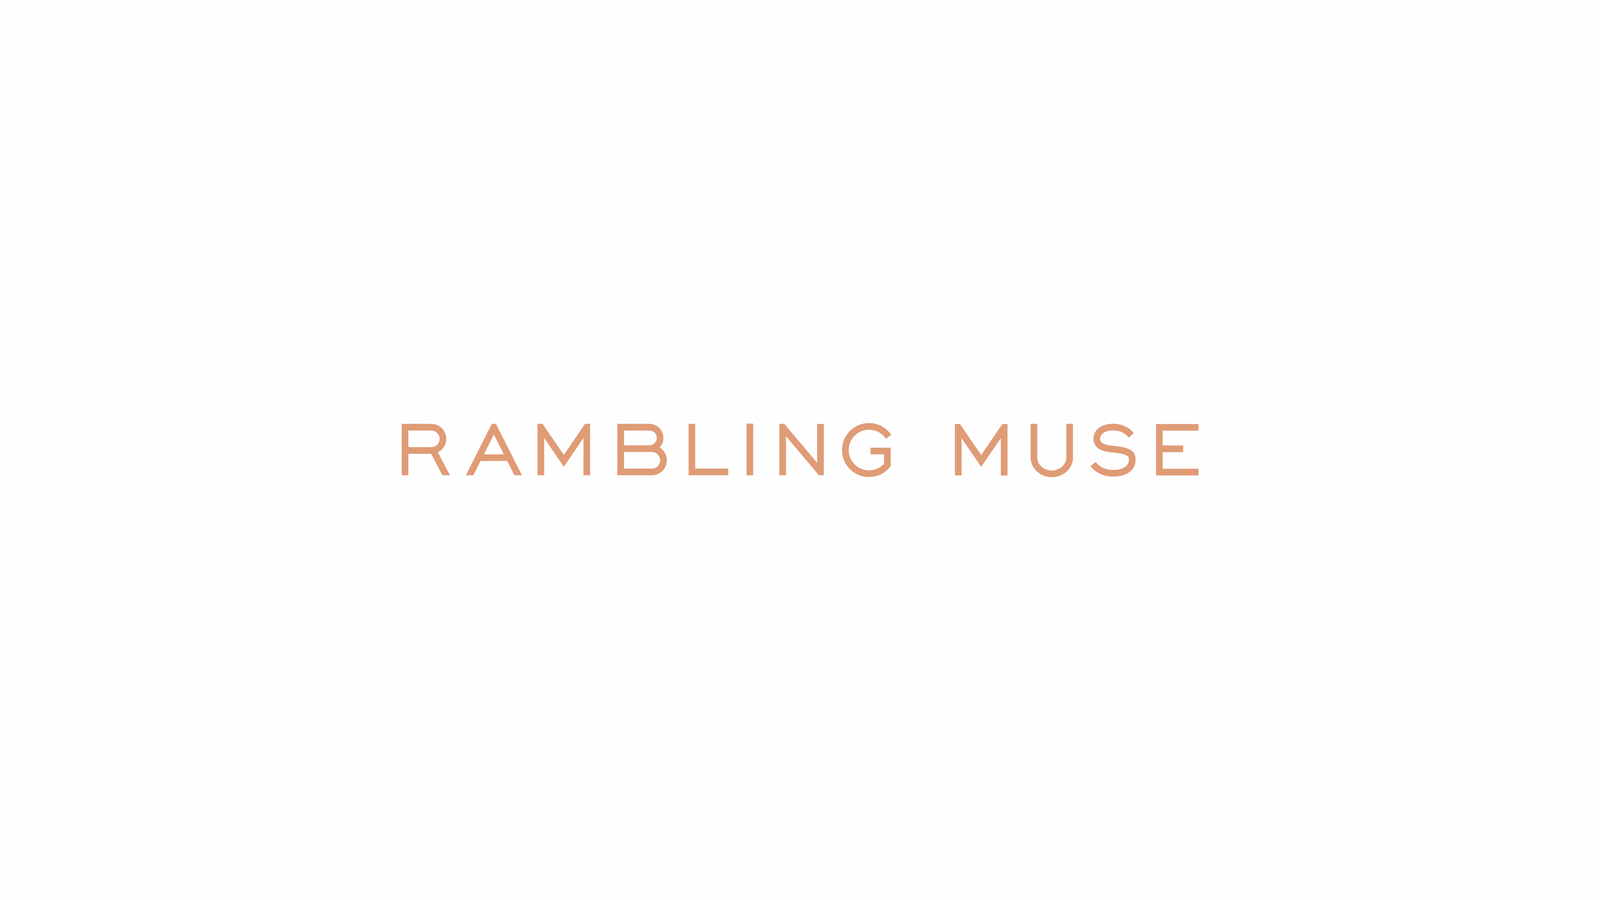 Rambling Muse